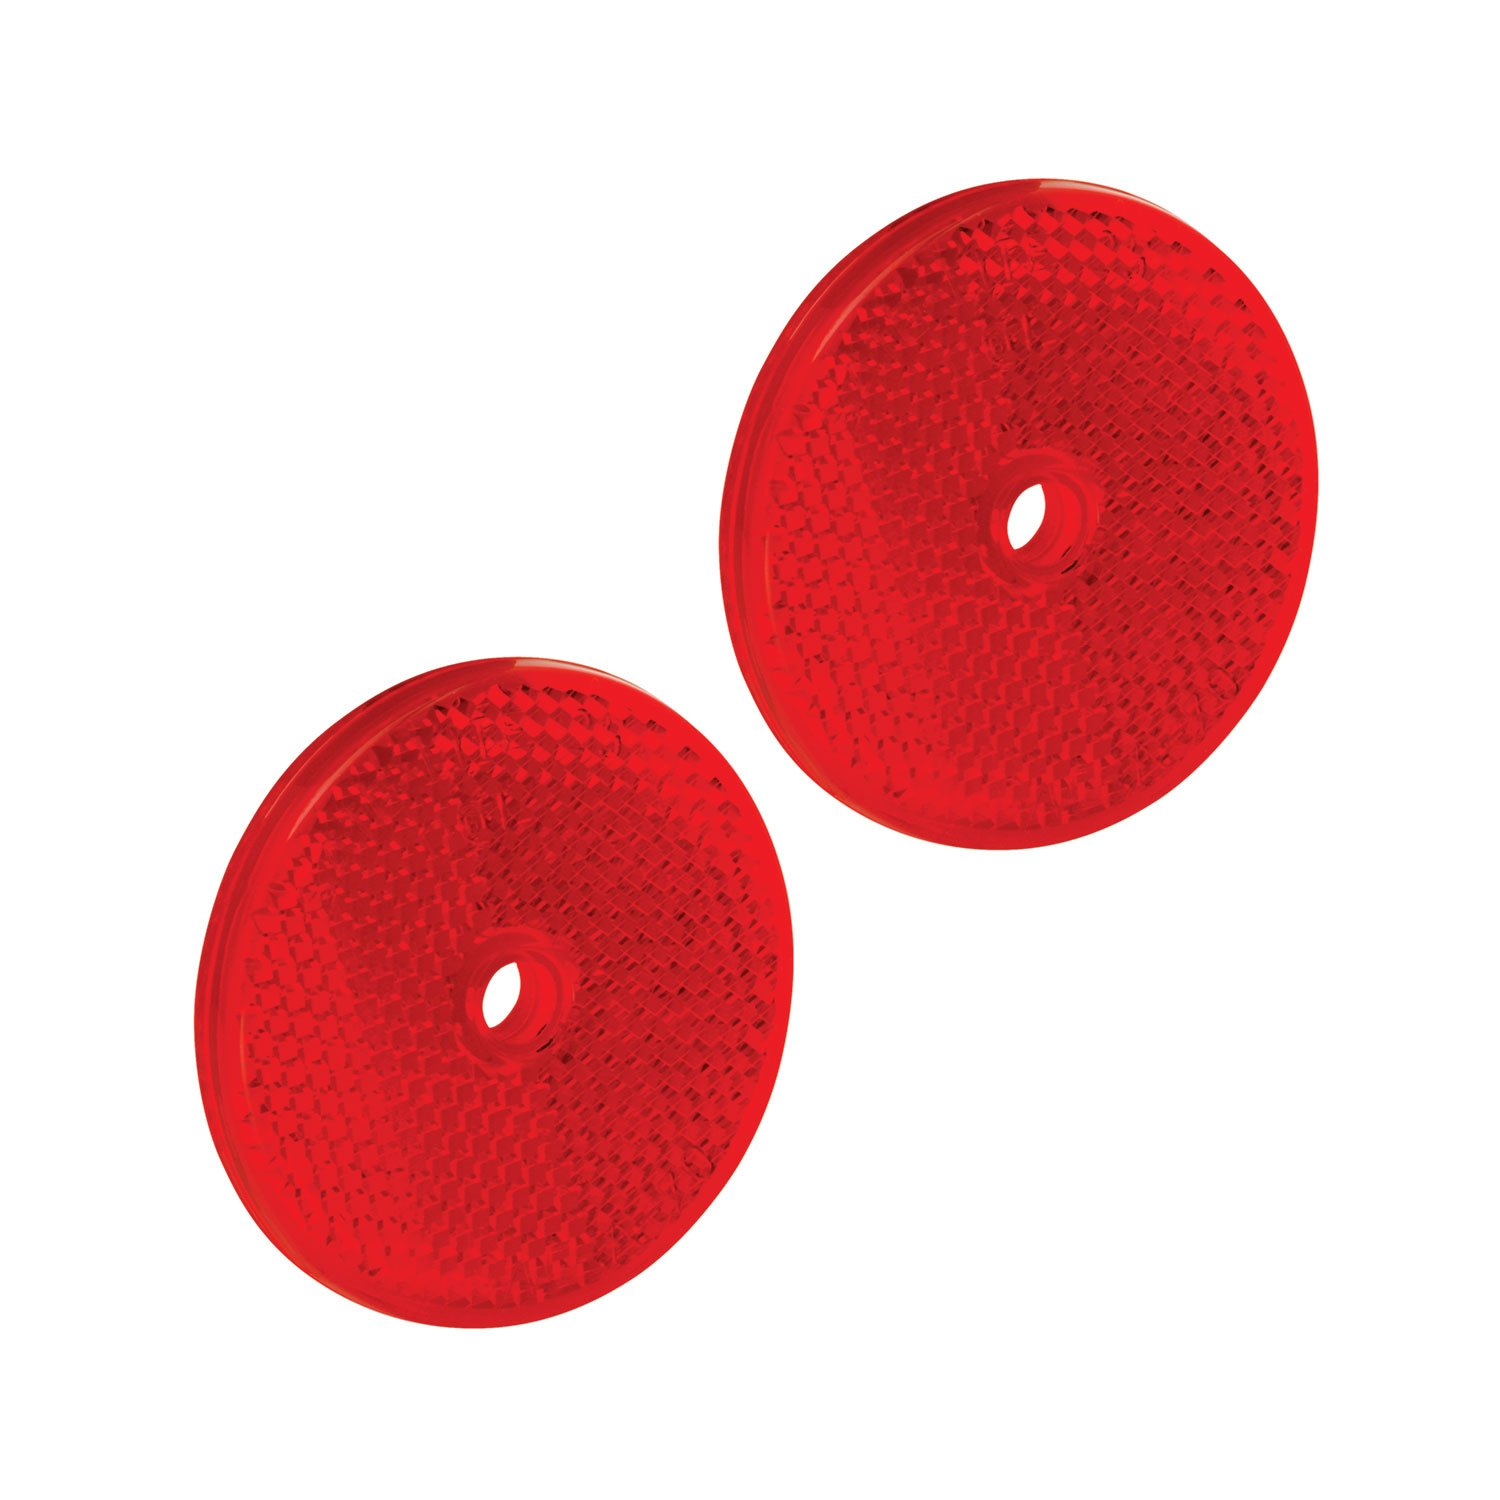 2 Pack 0404.1037 W18-0395 Bargman 74-71-170 Class A 2-3//16 Round Red Reflector with Center Mounting Hole